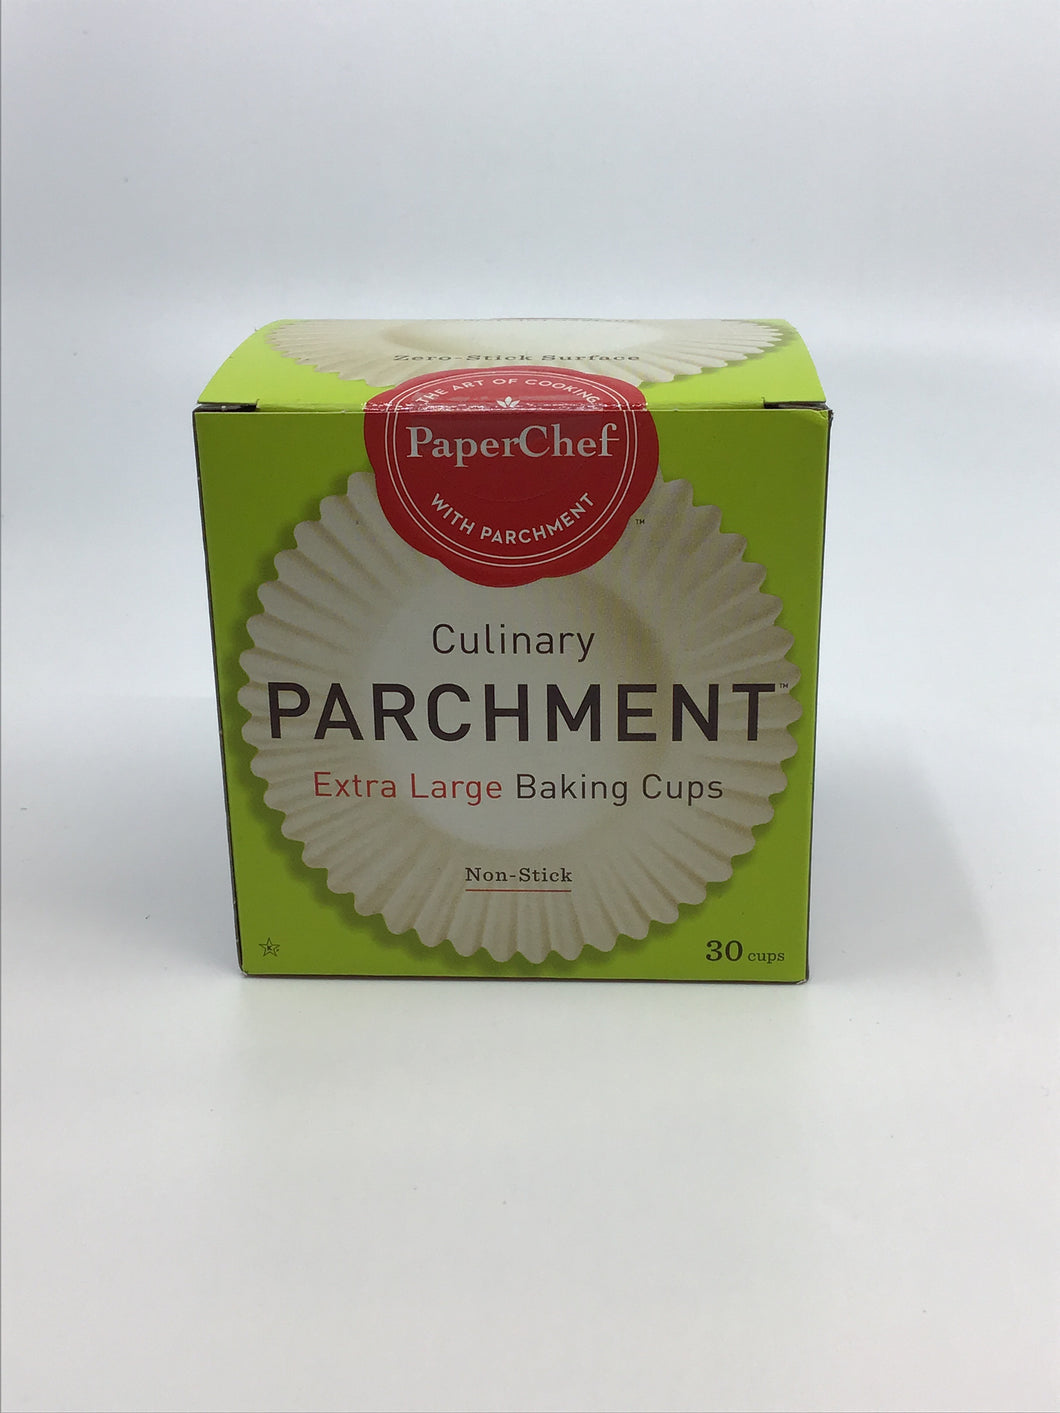 Paper Chef - Culinary Parchment Extra Large Baking Cups